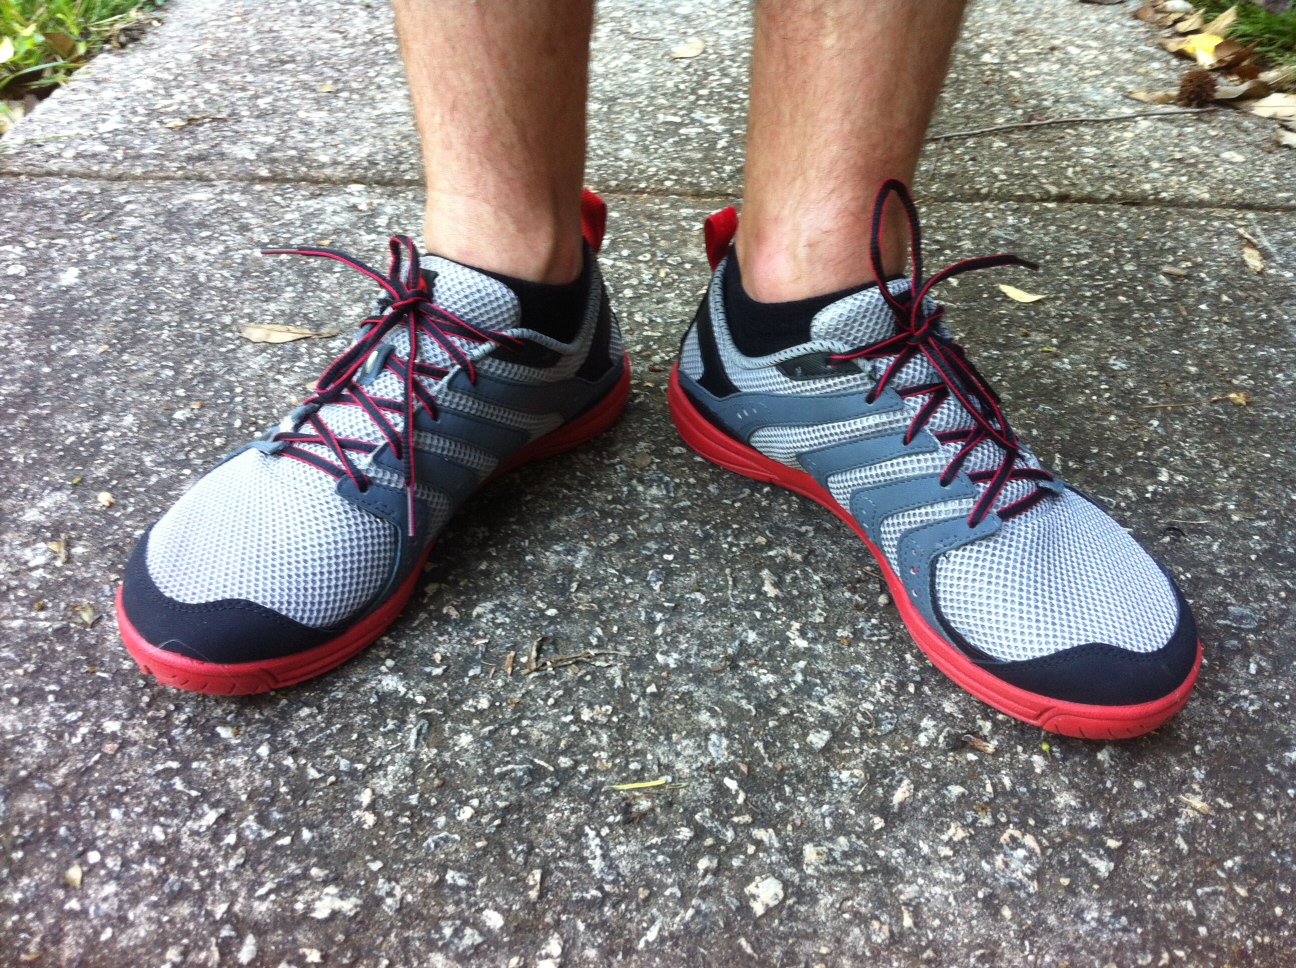 New Shoes: Merrell Barefoot Bare Access